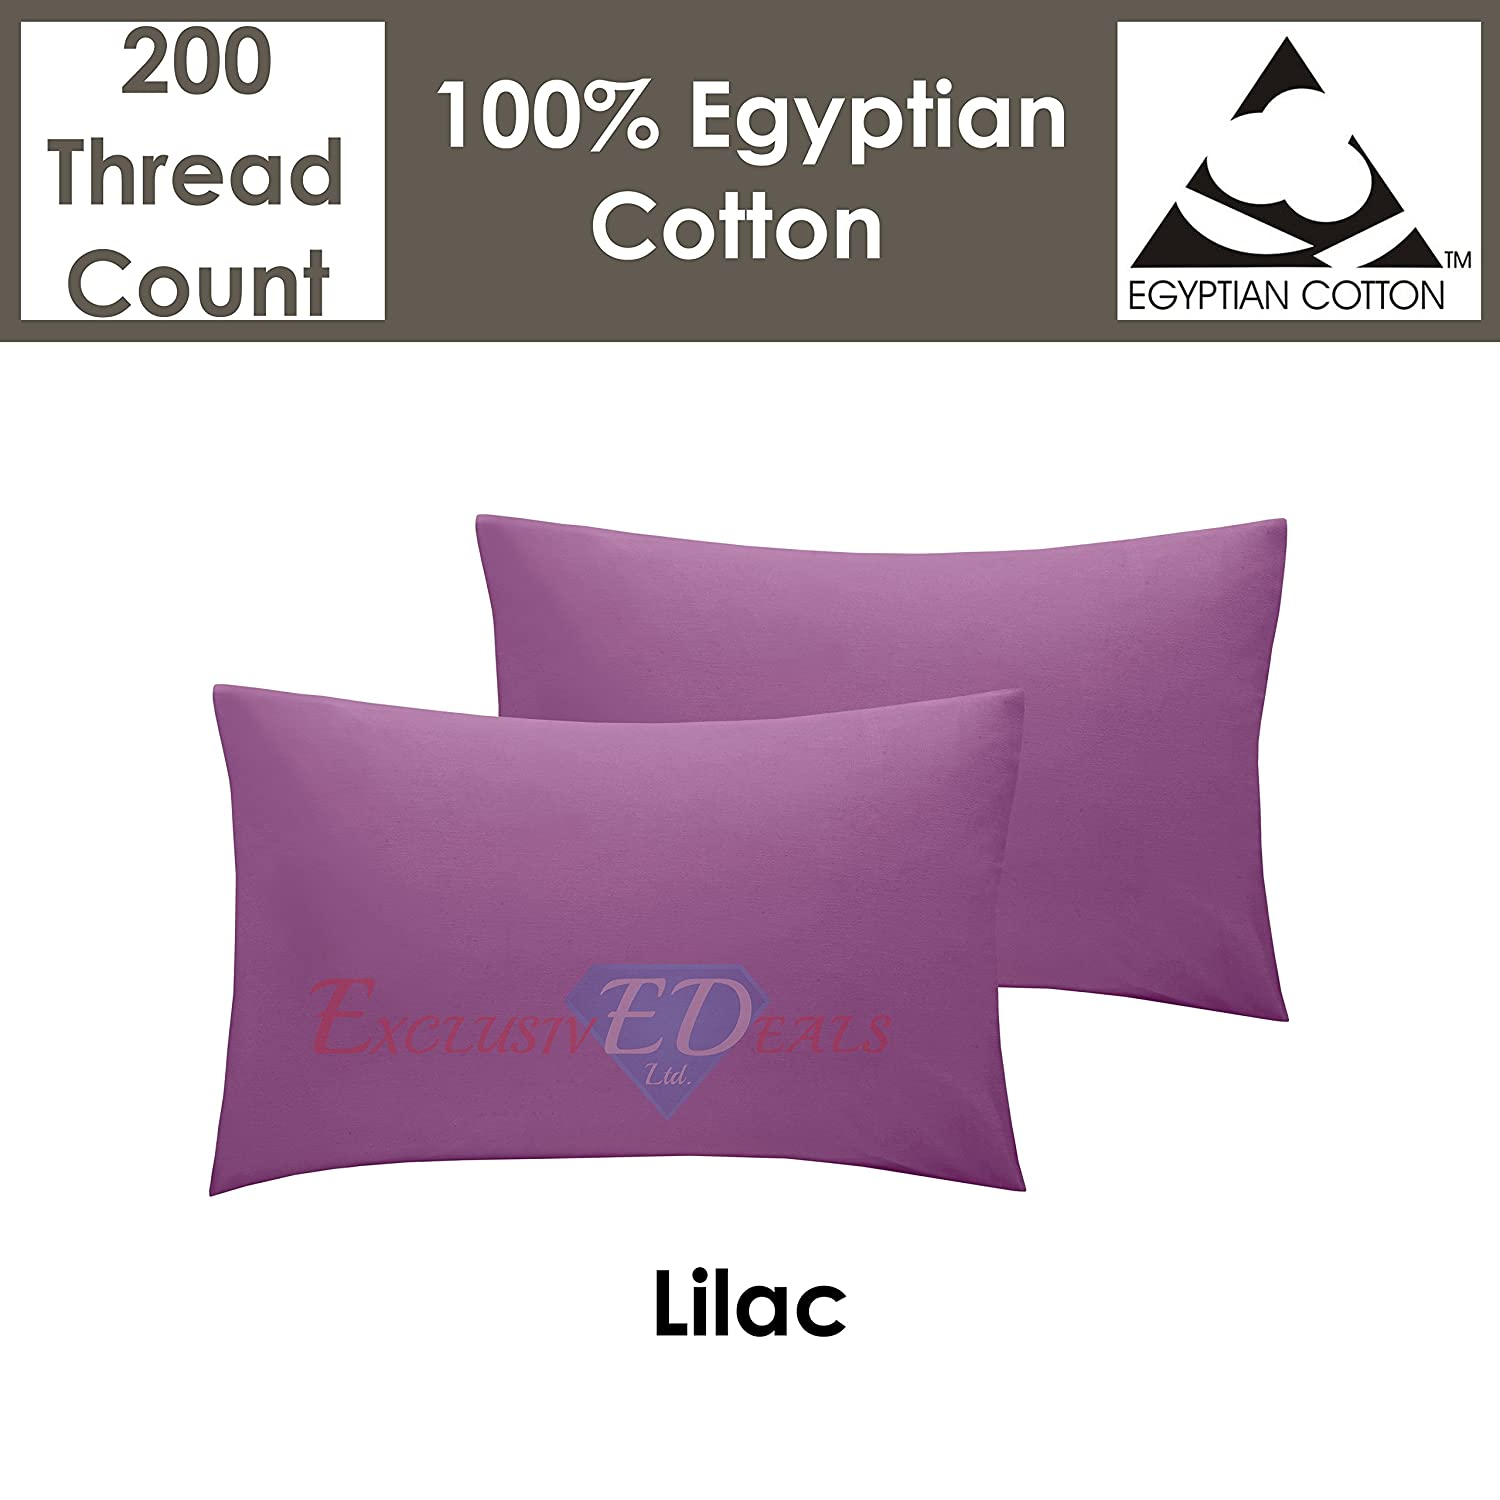 2 x Cotton Pillow Cases Pair TC 200 Cover Housewife Quality Thread Count Luxury